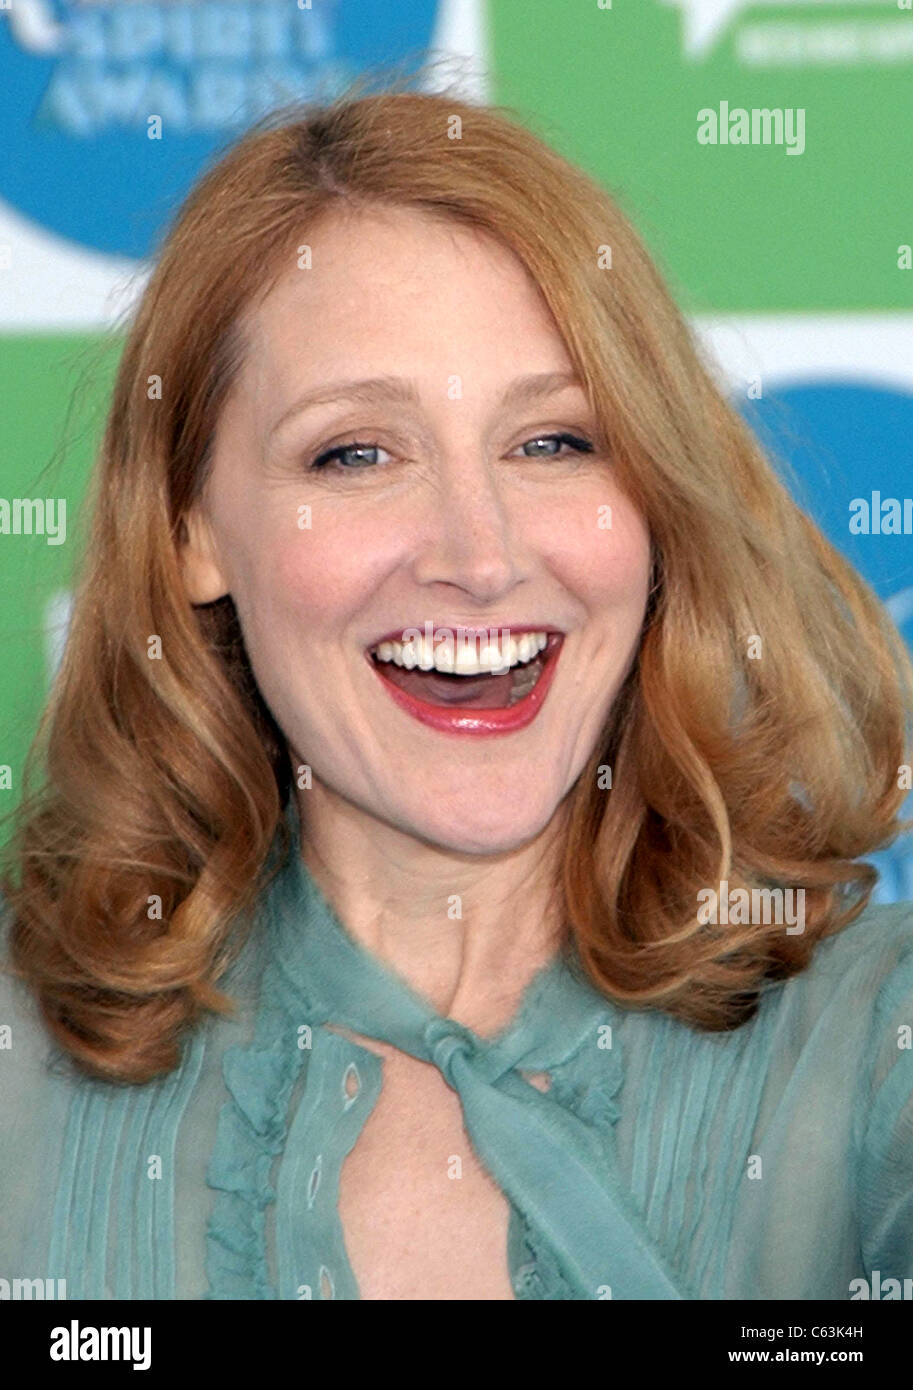 Patricia Clarkson at arrivals for 20th IFP Independent Spirit Awards, Los Angeles, CA, Saturday, February 26, 2005. - Stock Image